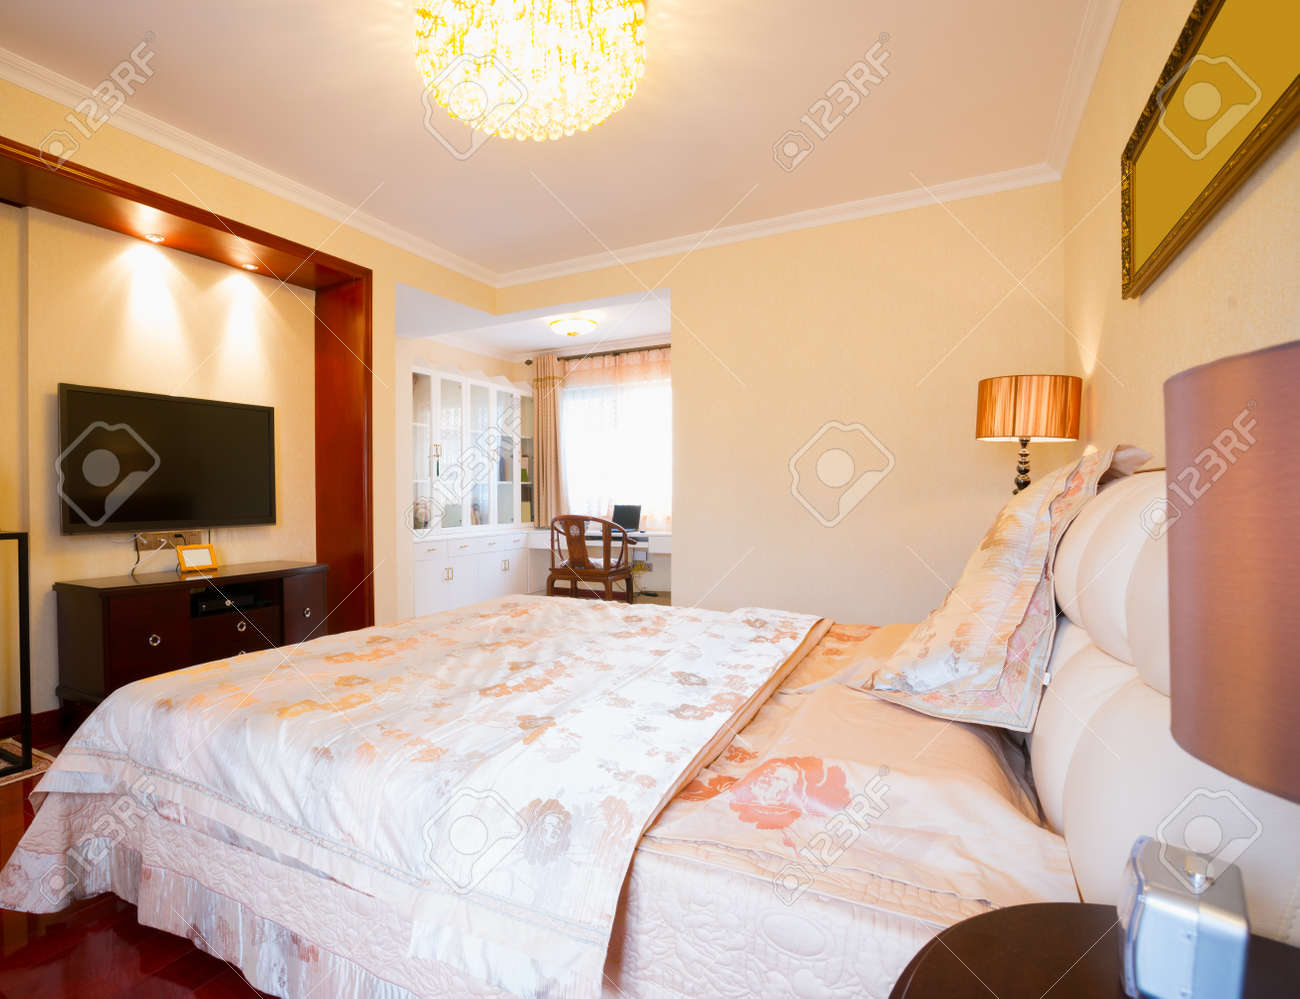 luxury bedroom Stock Photo - 20127449